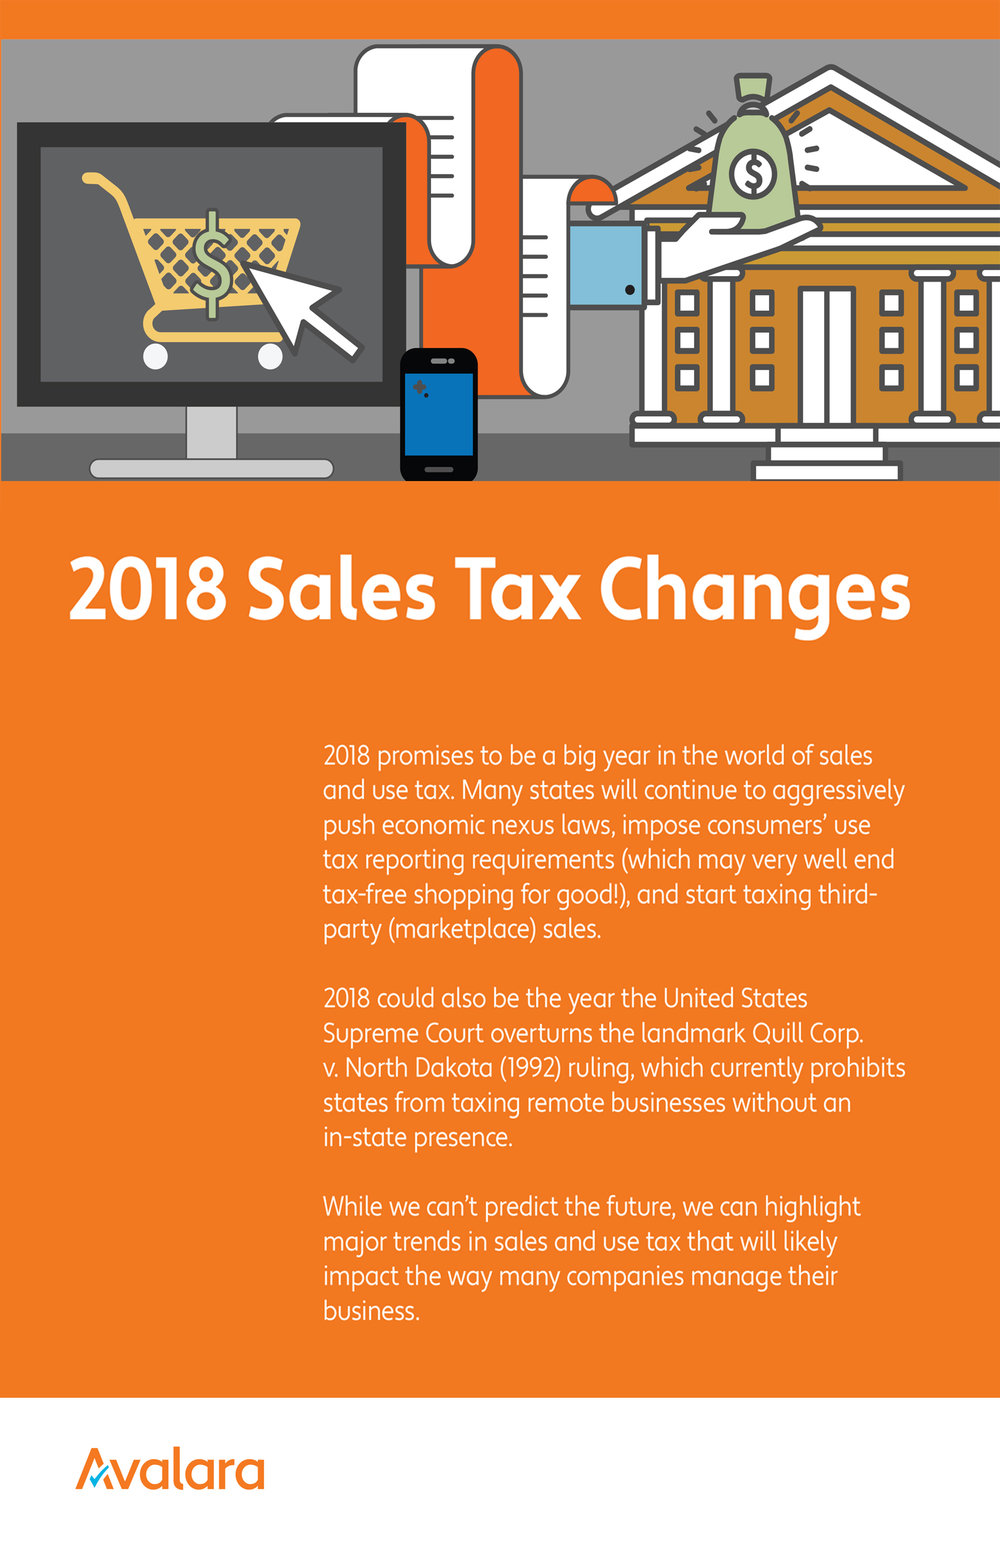 avalara 2018 Sales tax changes -